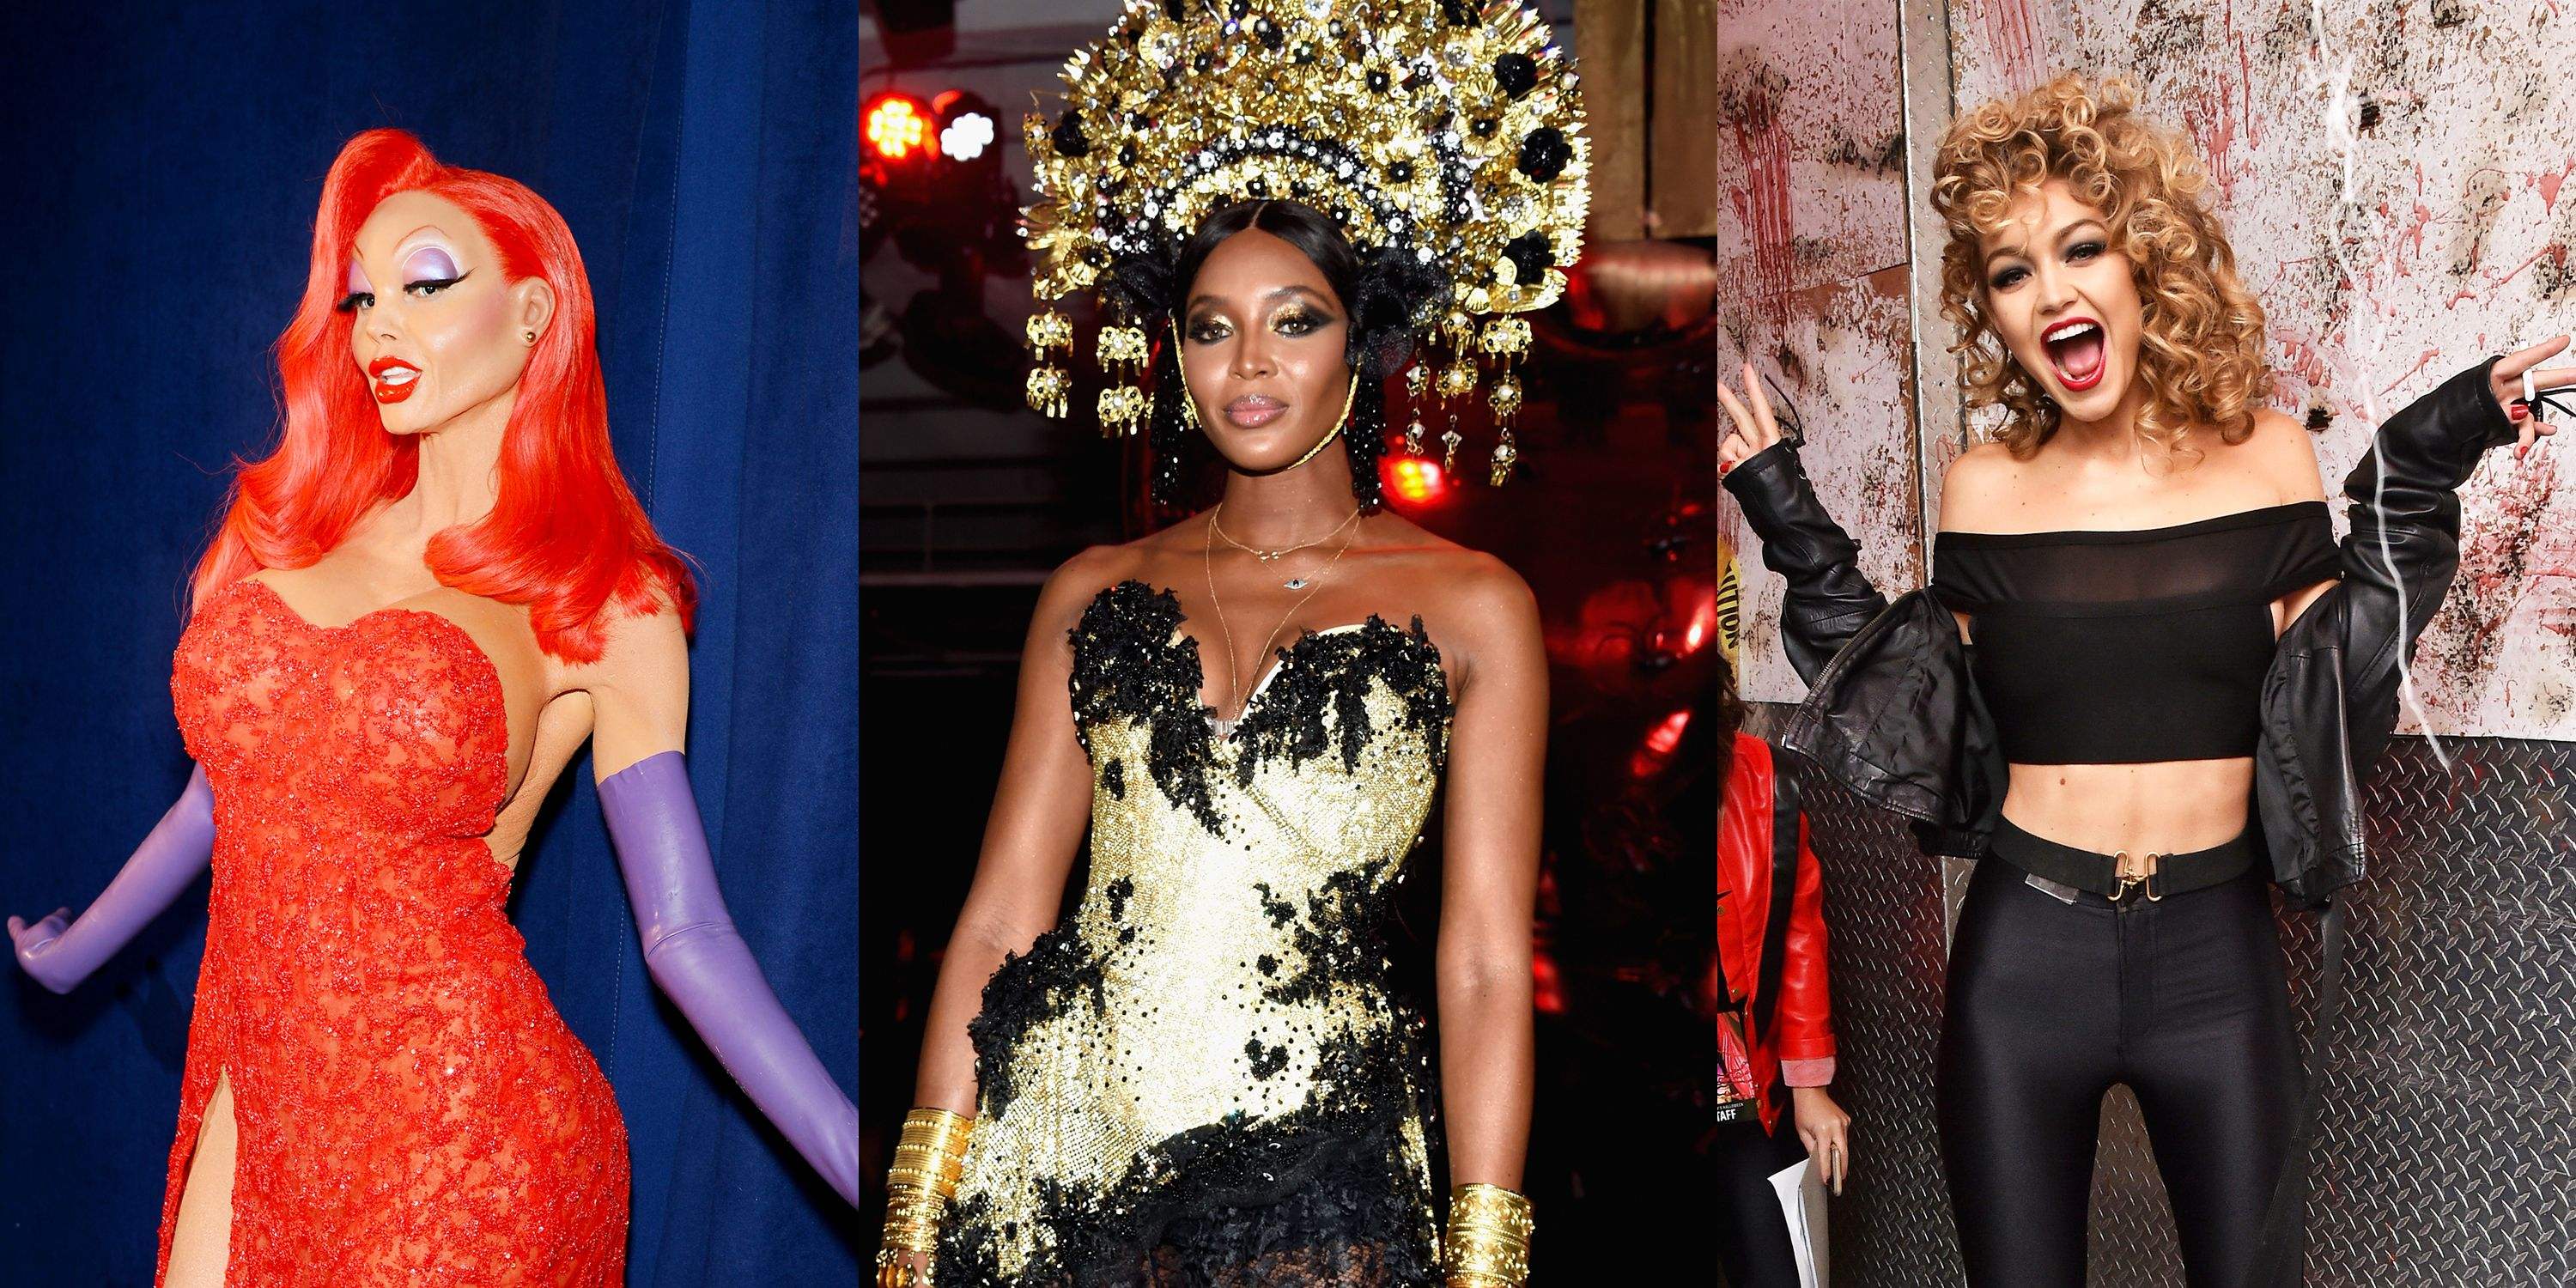 The 20 Most Epic Celebrity Halloween Costumes Ever